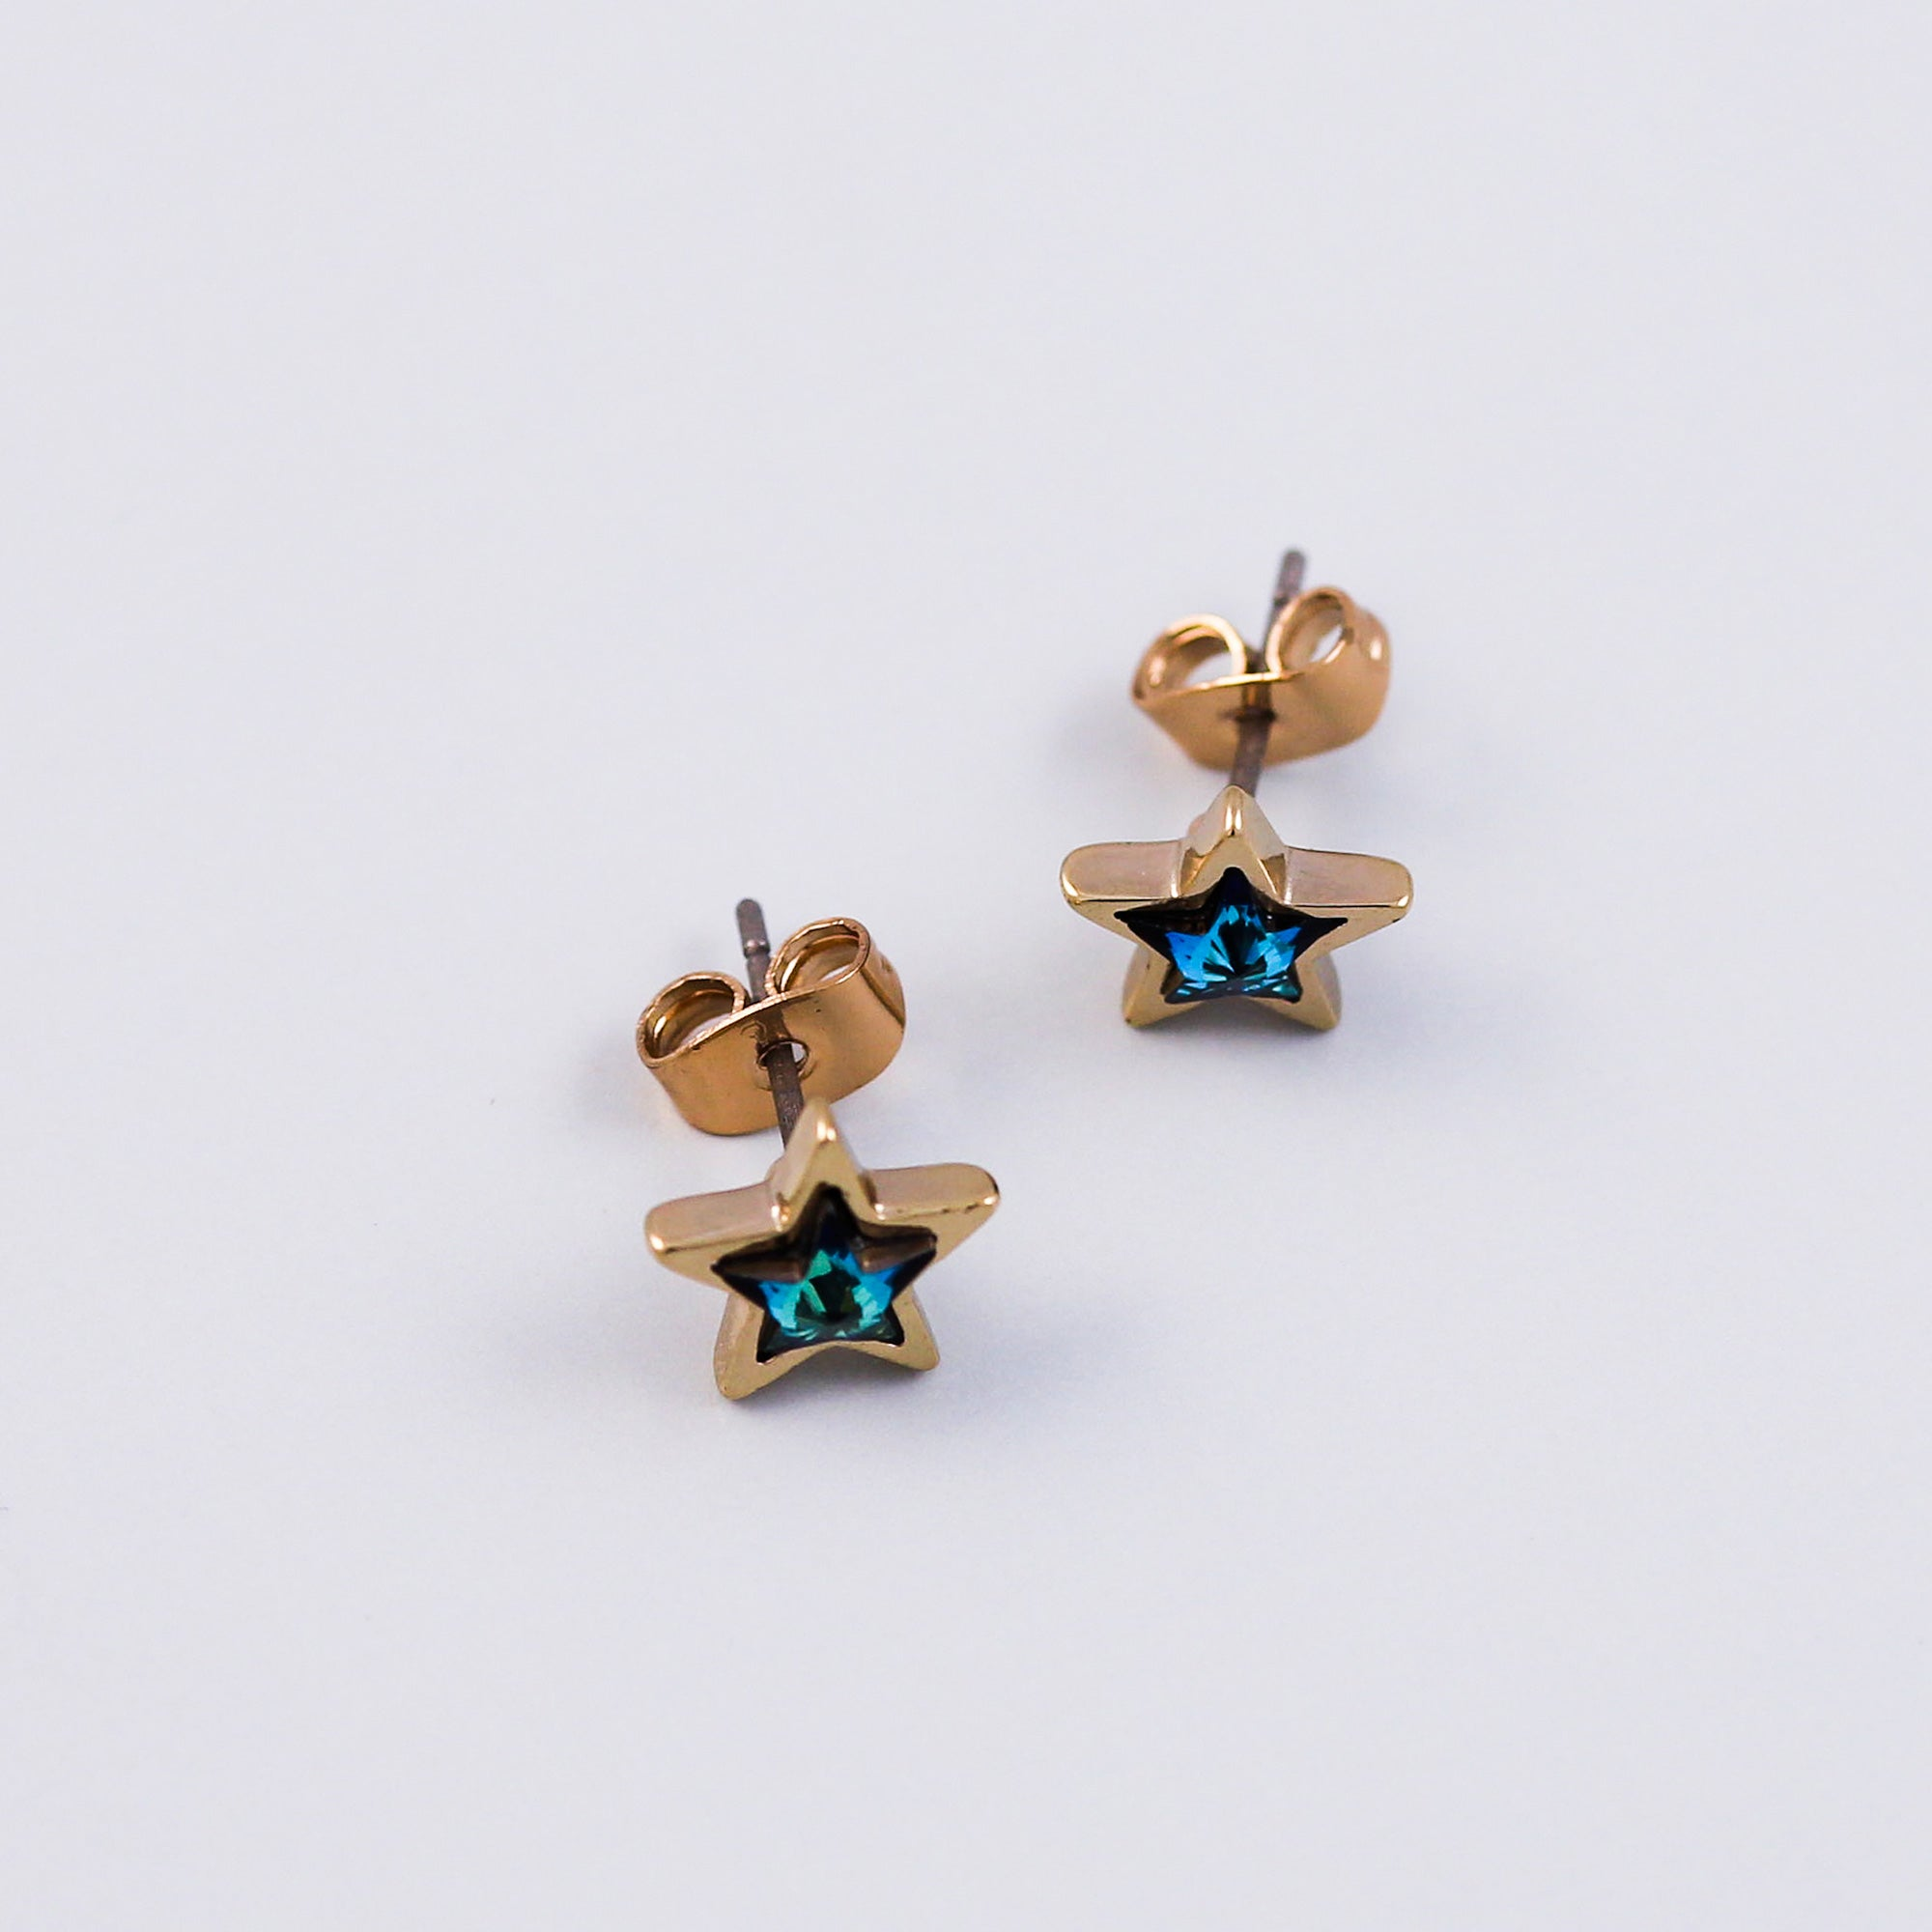 Blue Star Stud Earrings | Gold Star Earrings | Stud Earrings for Women